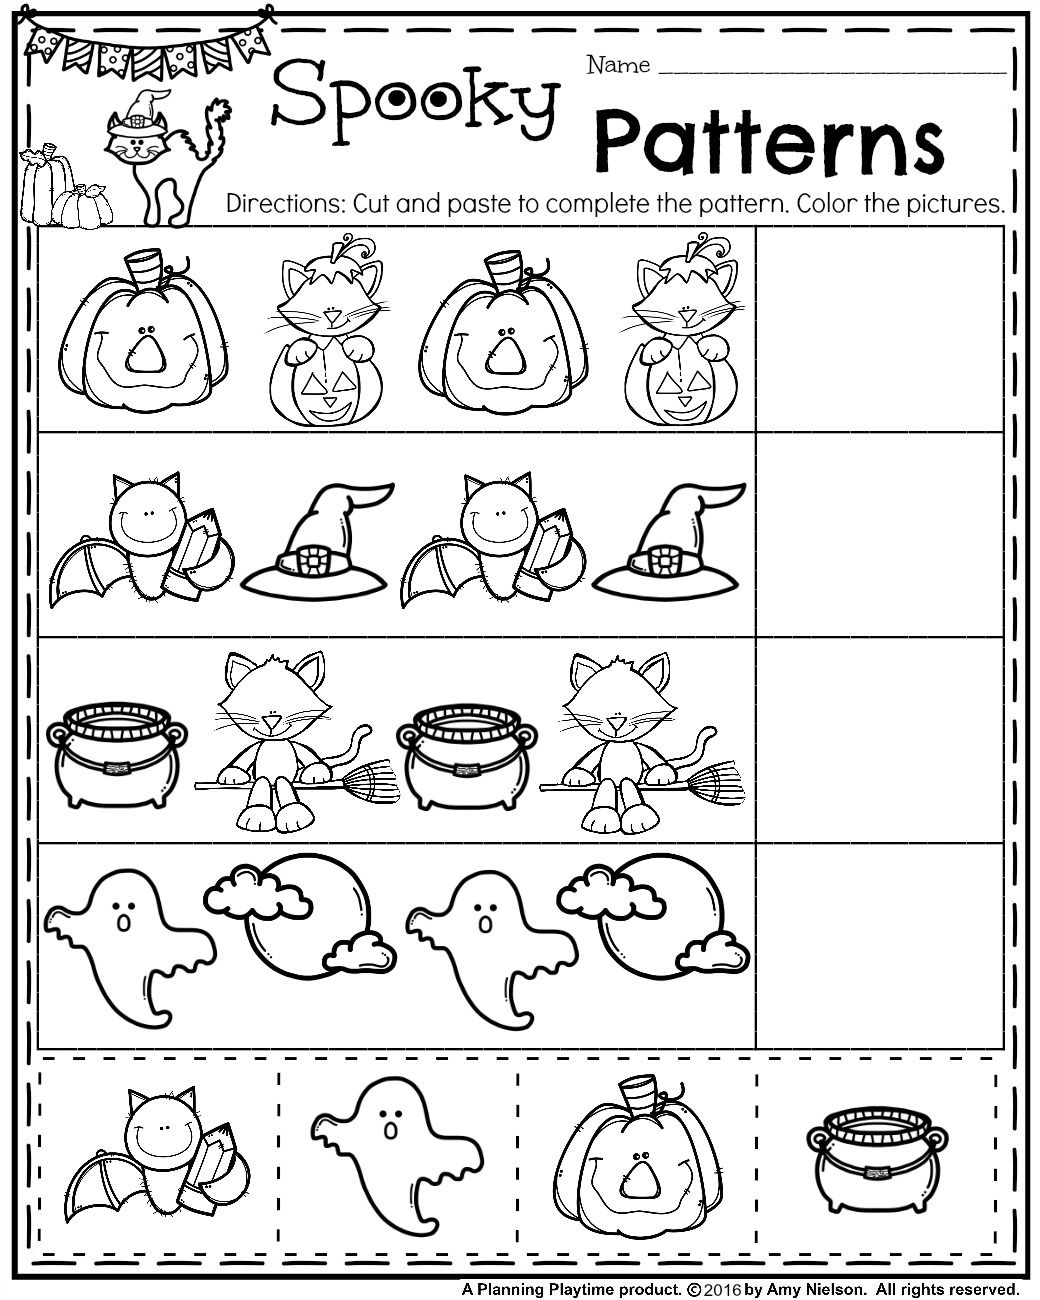 Preschool Pattern Worksheets For October